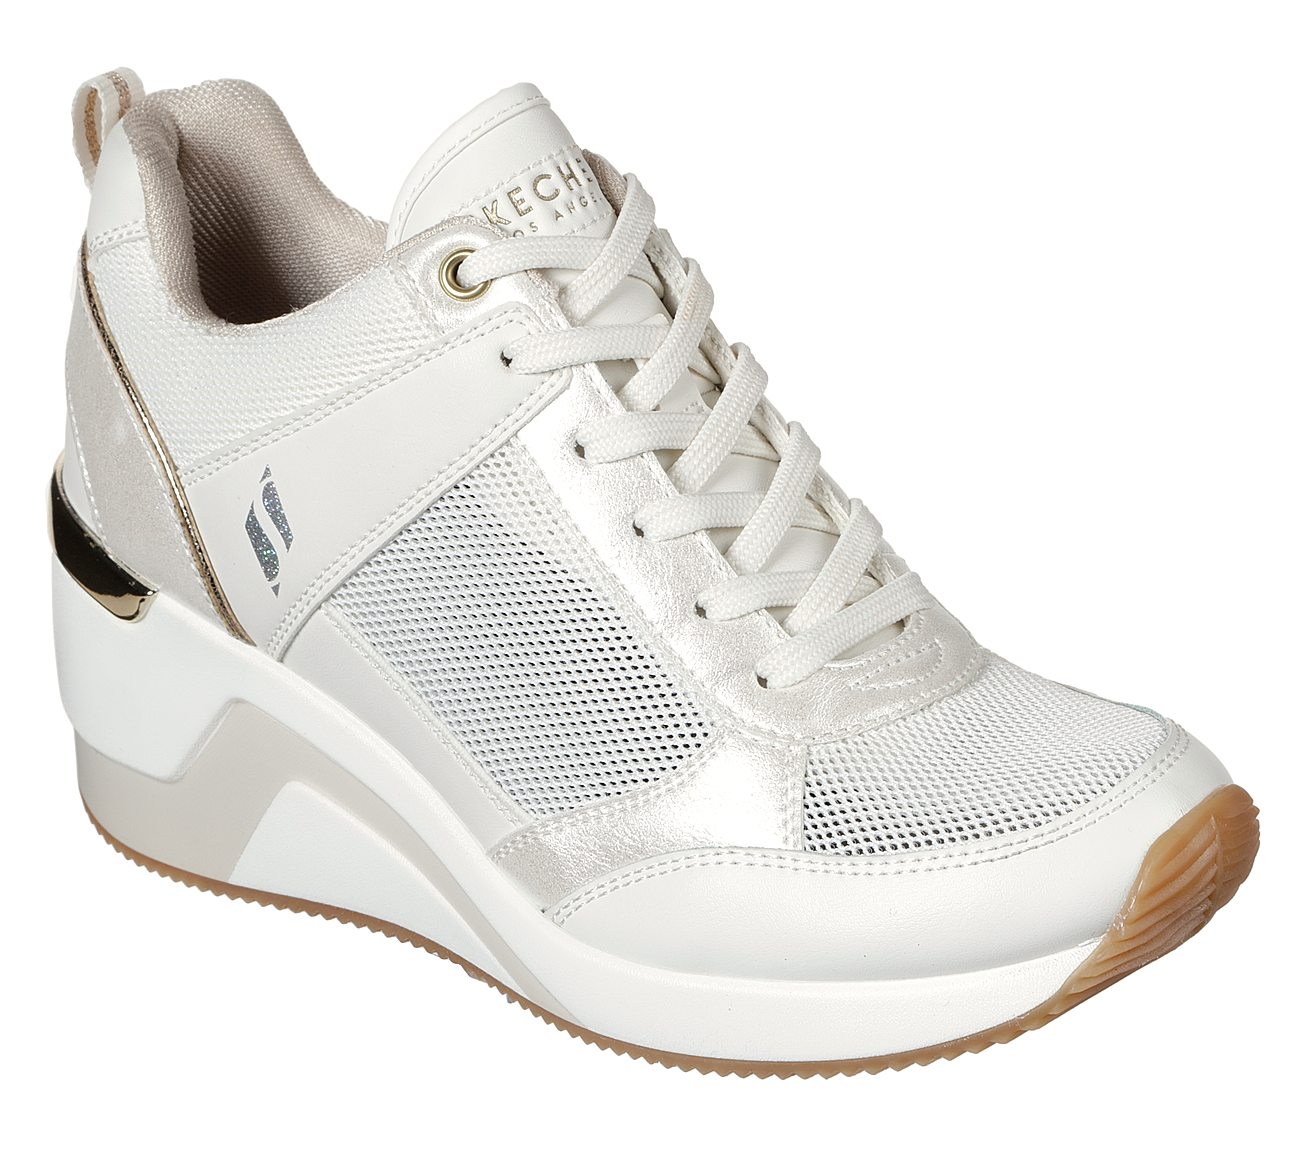 SKECHERS WHITE LEATHER Trainers Casual